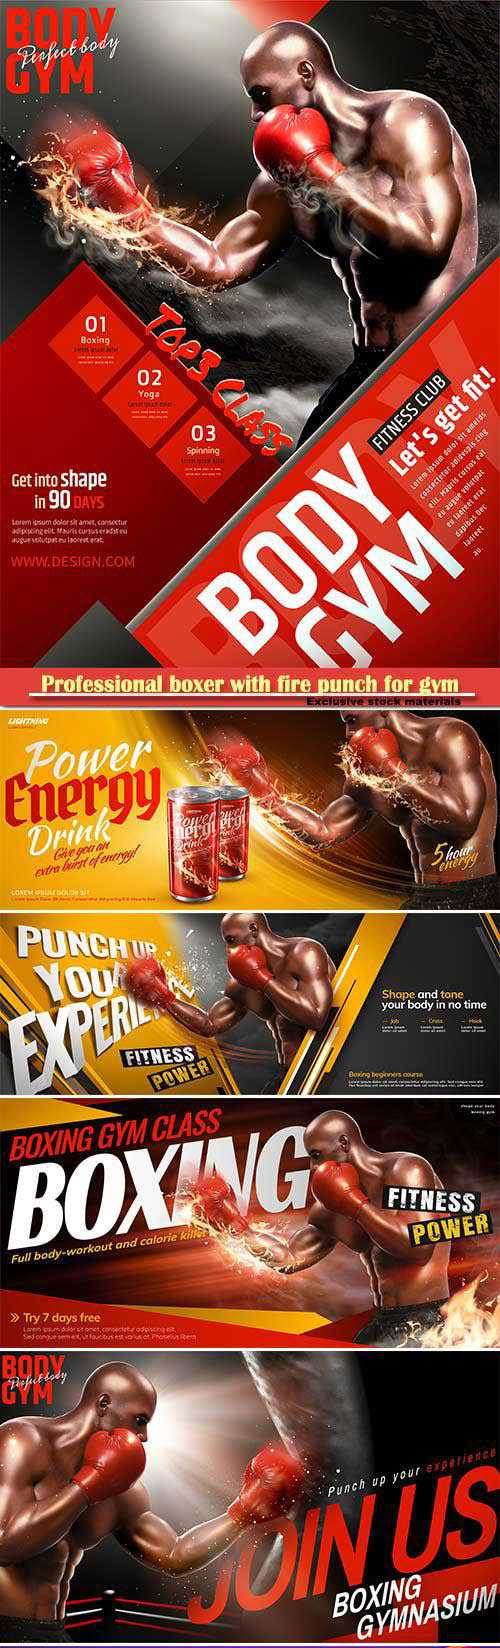 Professional boxer with fire punch for gym class poster in 3d illustration